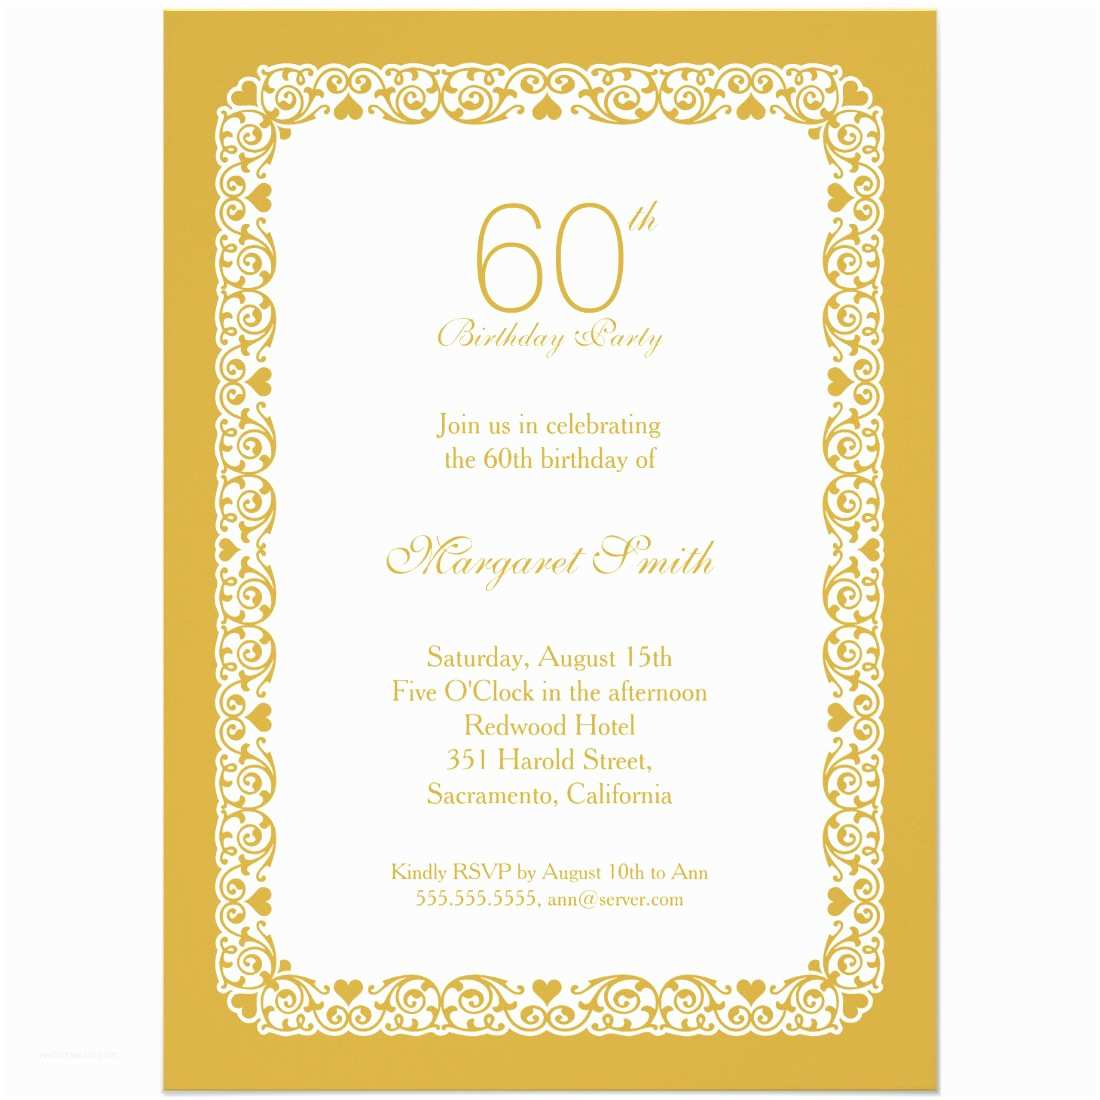 Custom Birthday Invitations Elegant Personalized 60th Birthday Party Invitations